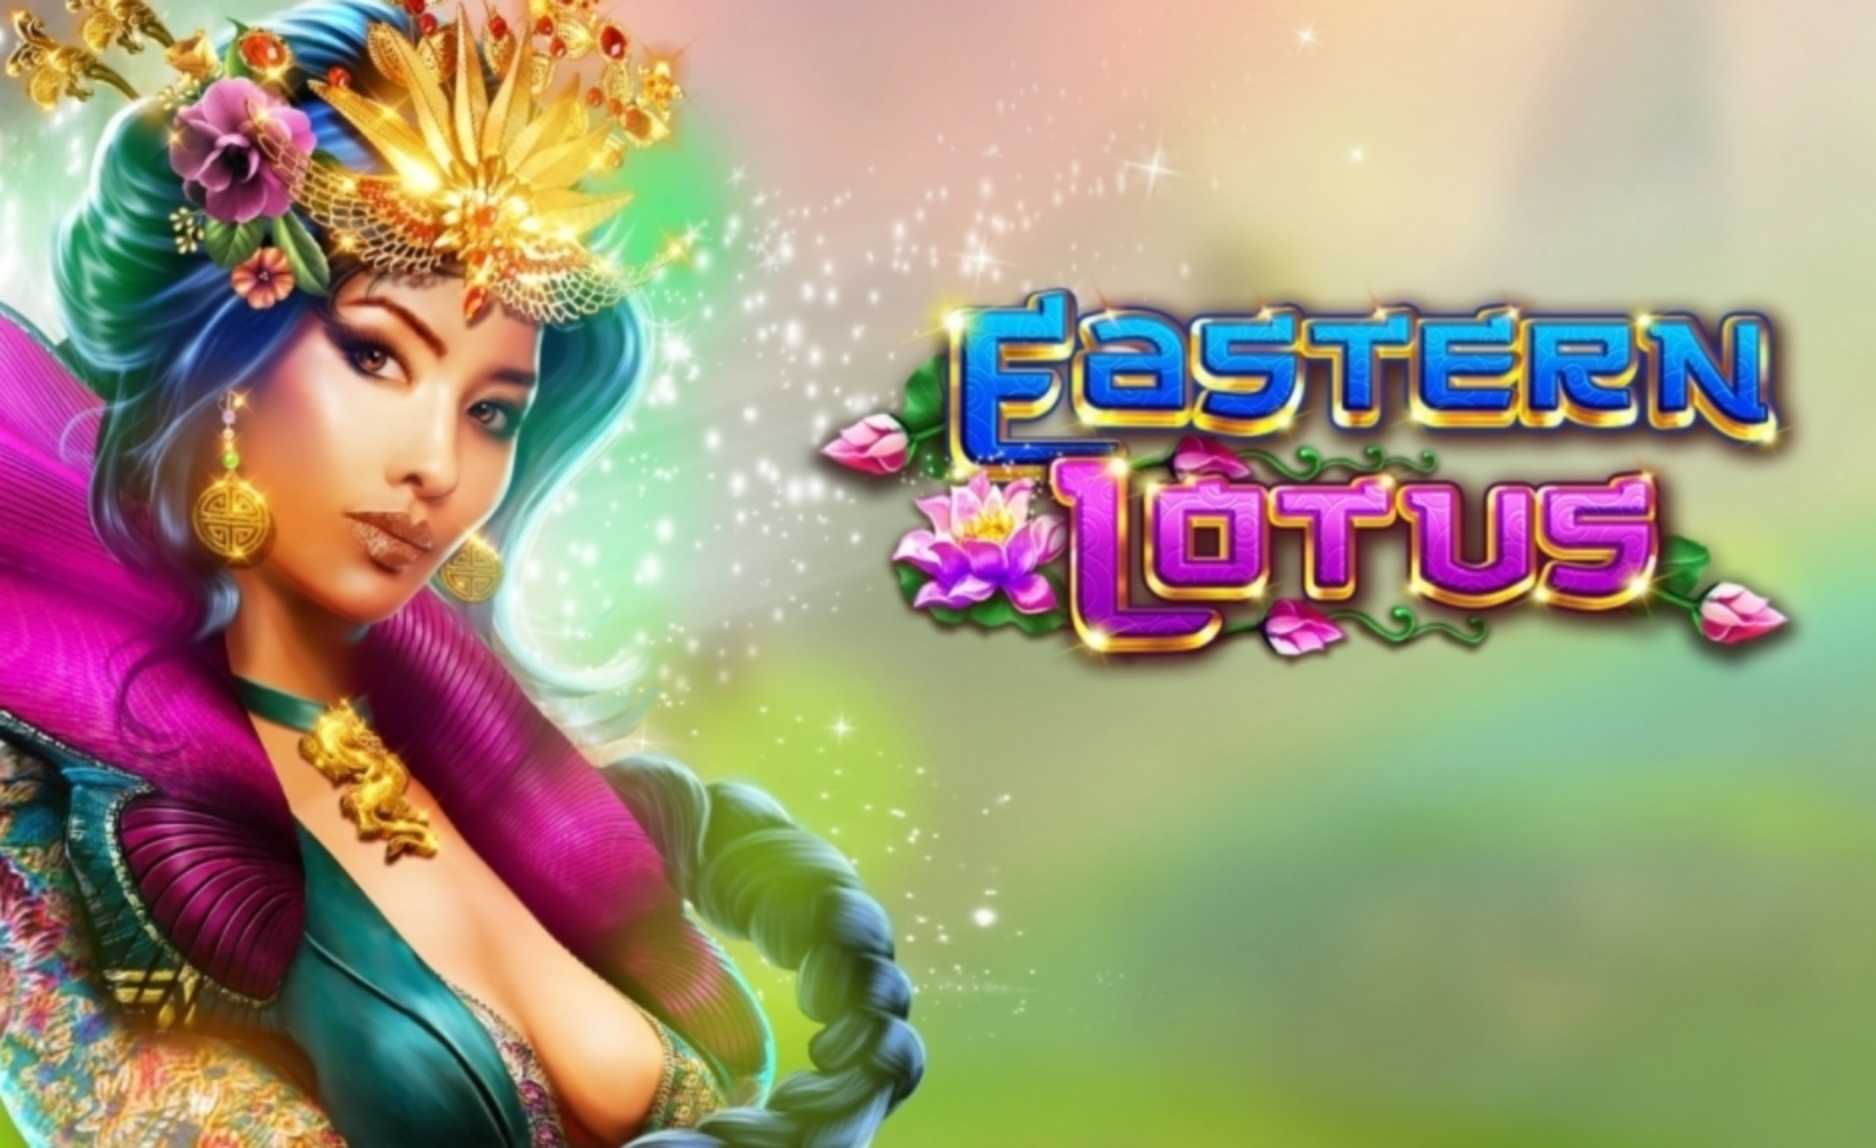 The Eastern Lotus Online Slot Demo Game by SlotVision